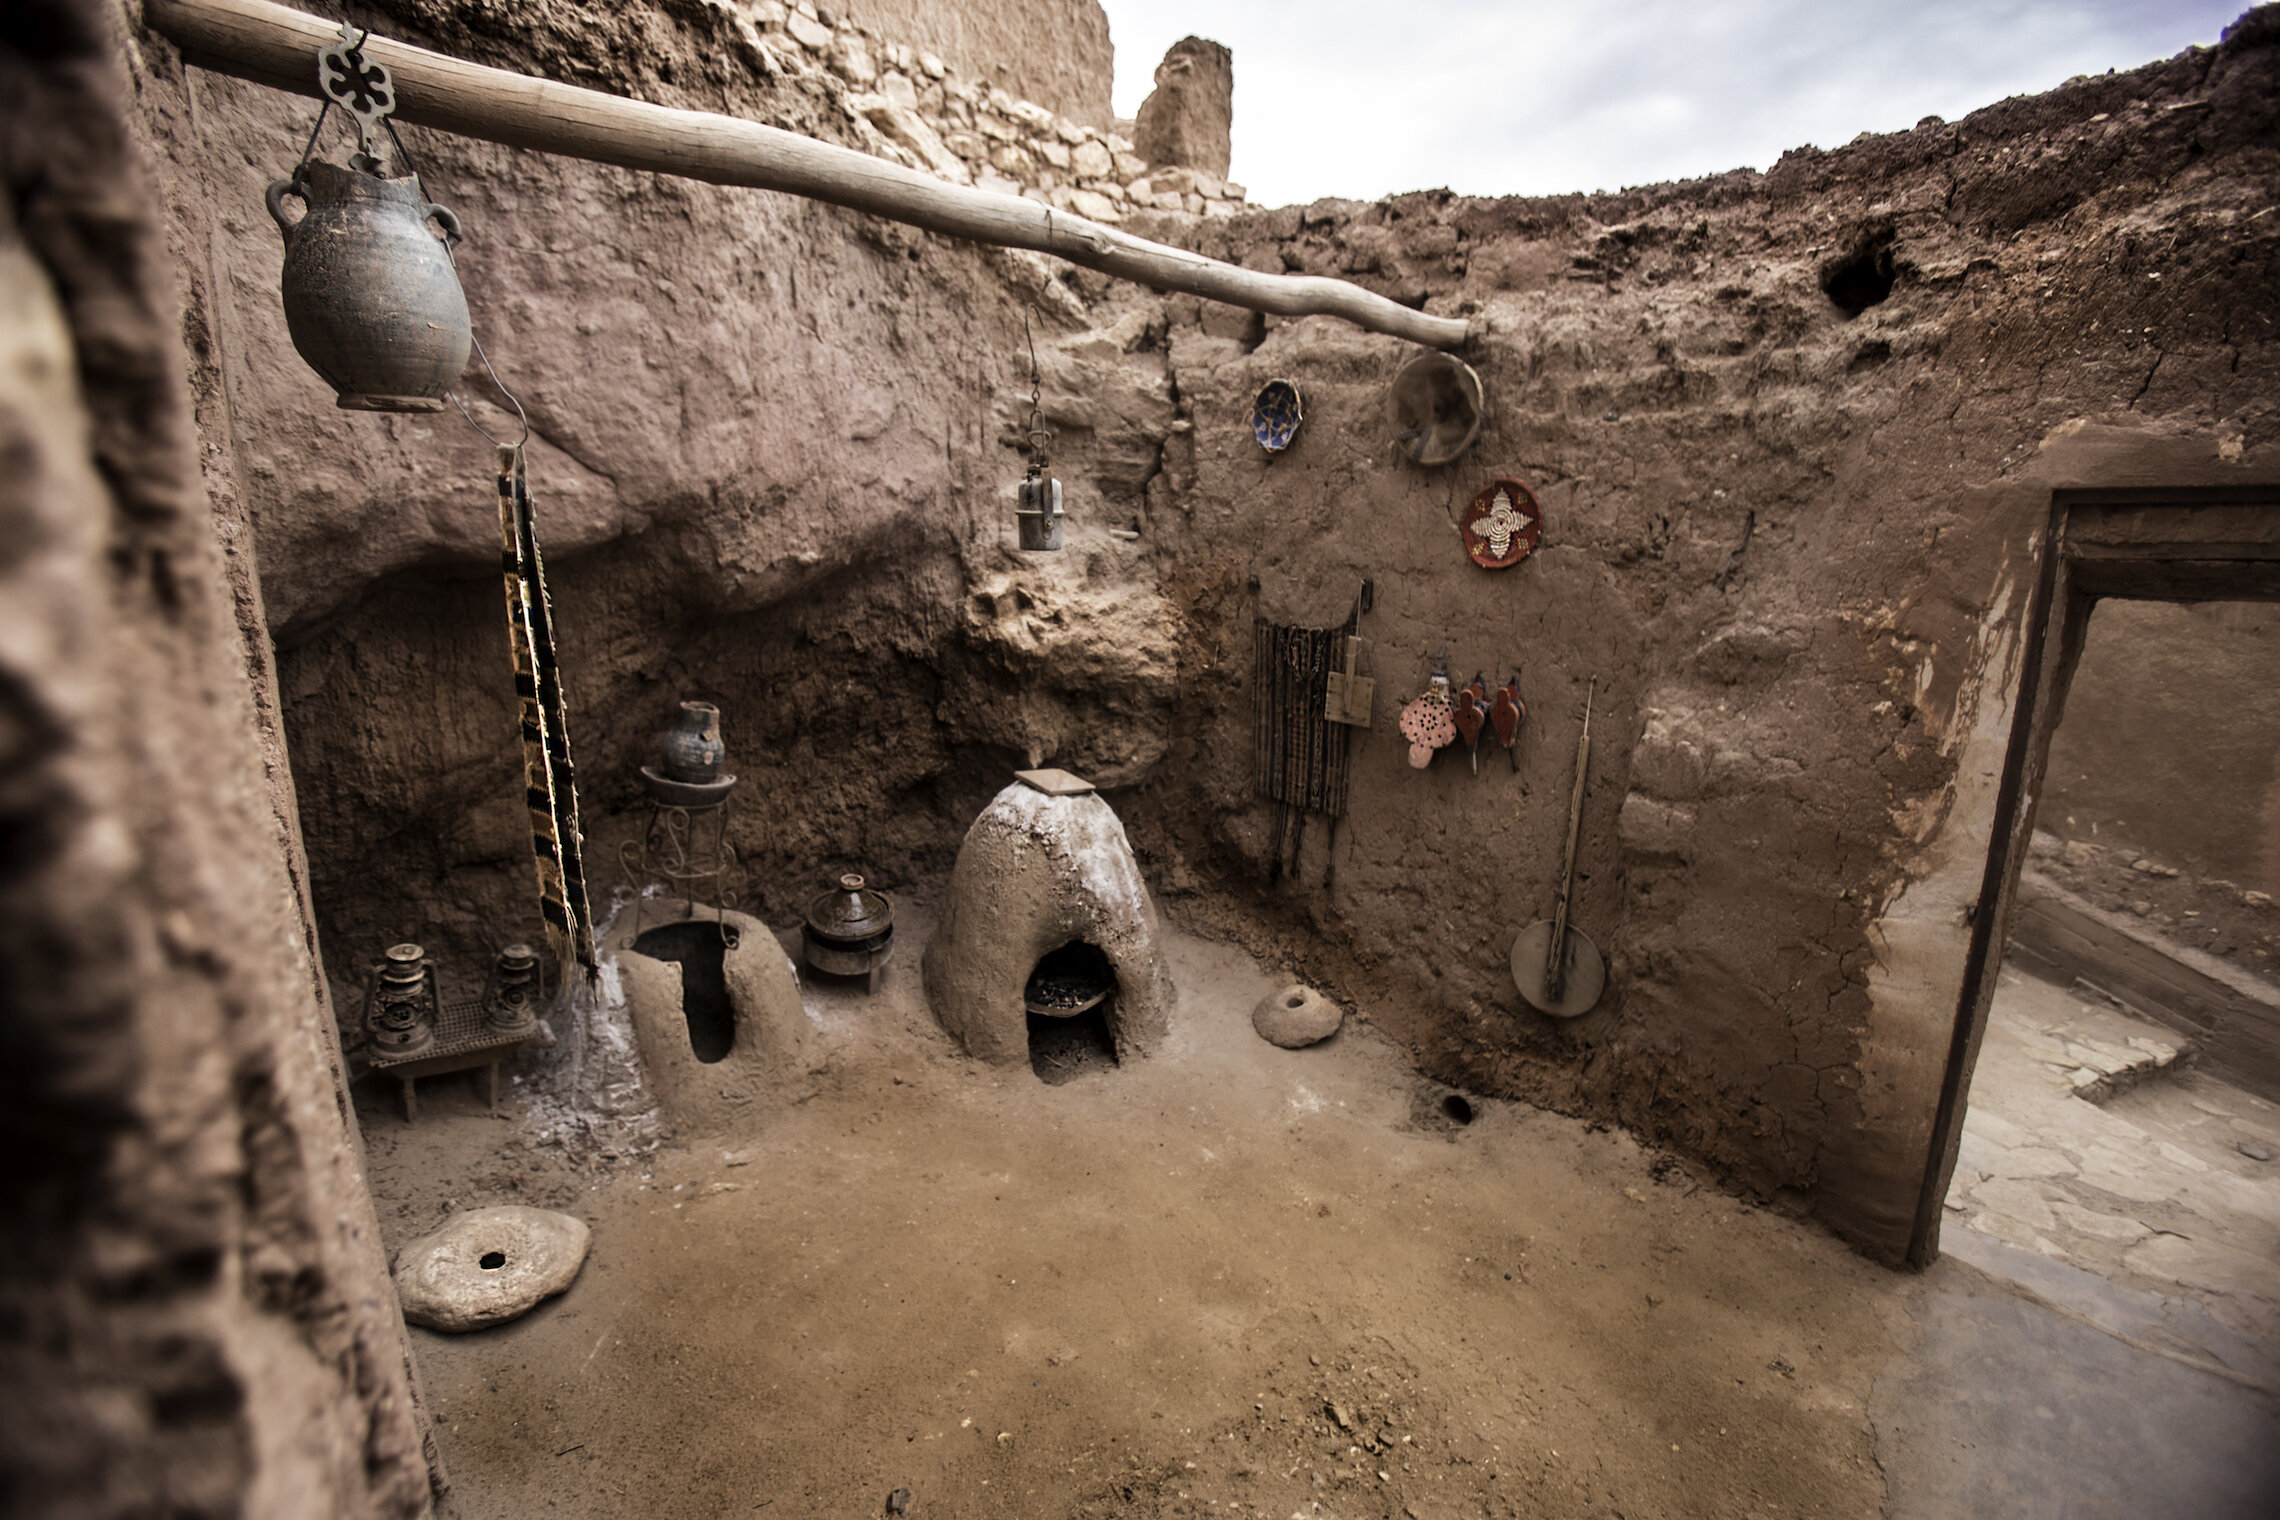 A Local Kitchen on site at Ksar Aït-Ben-Haddou.